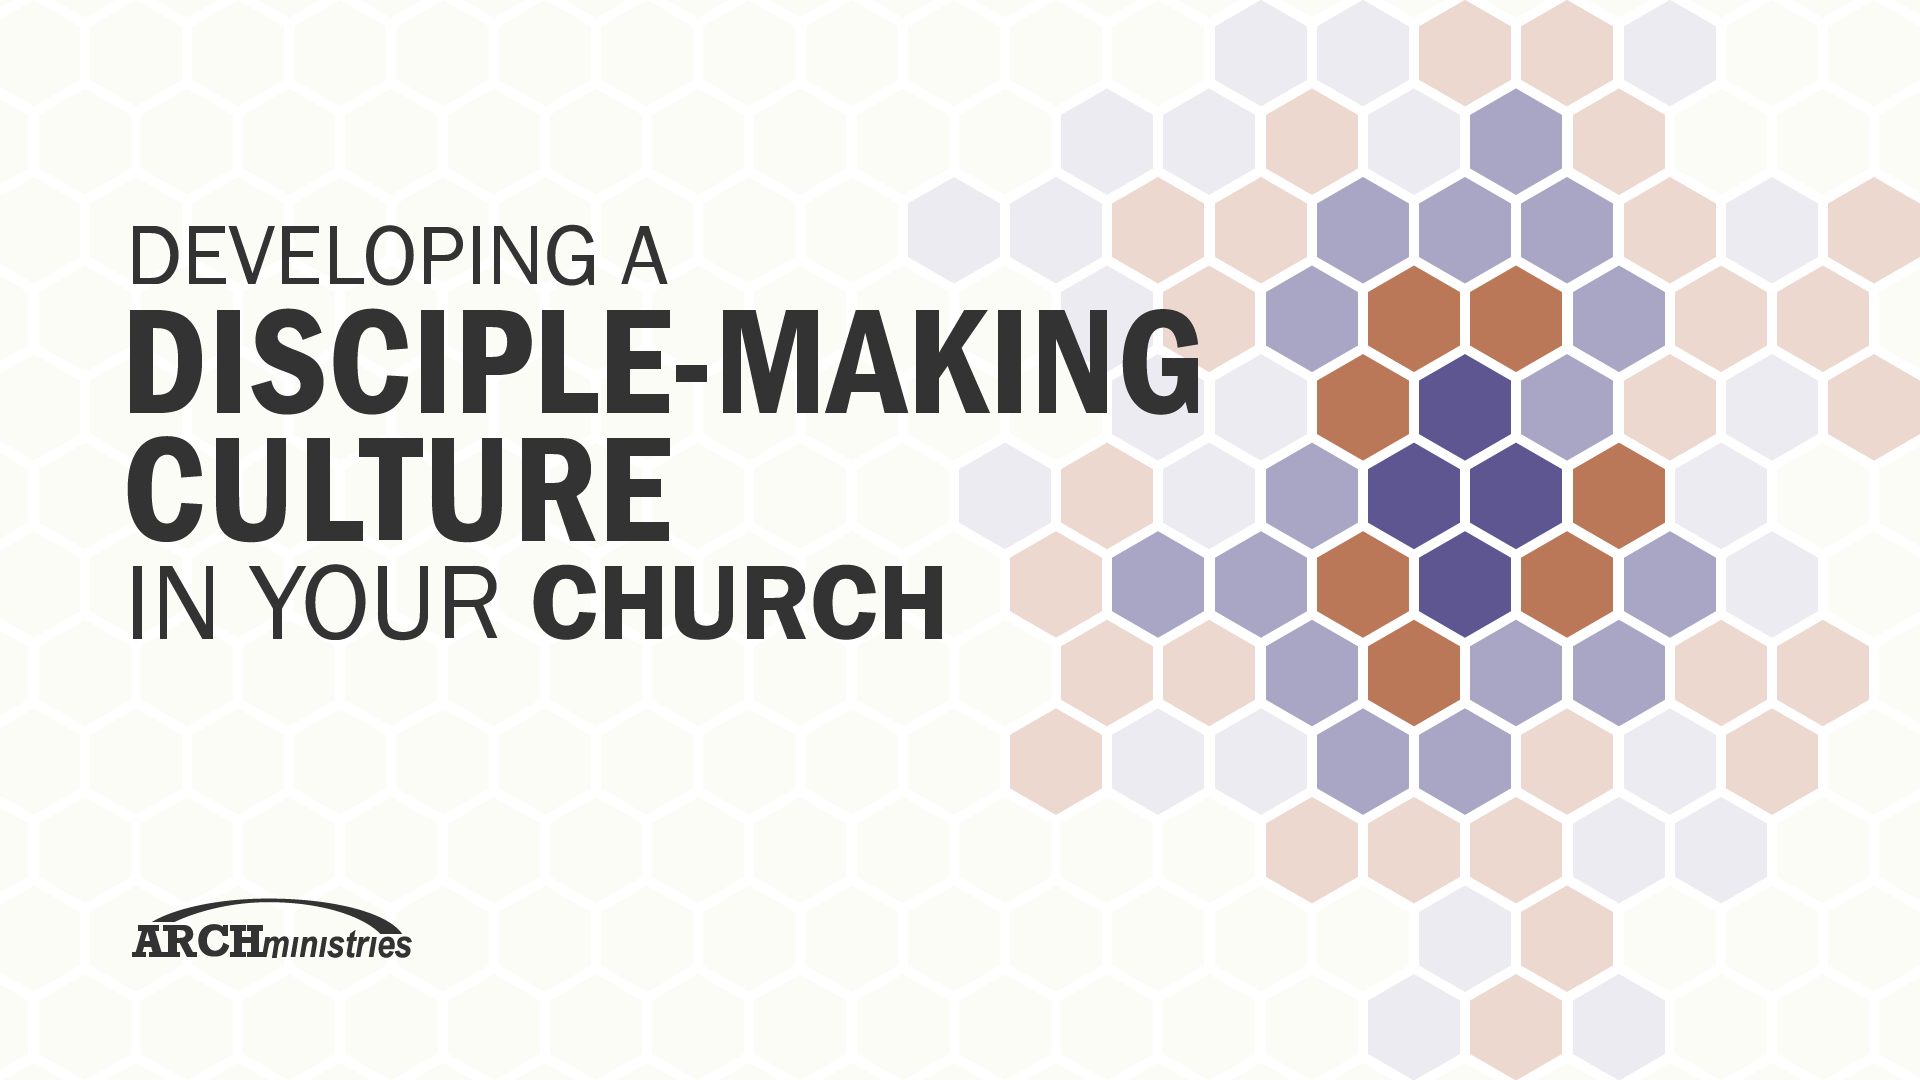 Developing a Disciple-Making Culture in Your Church